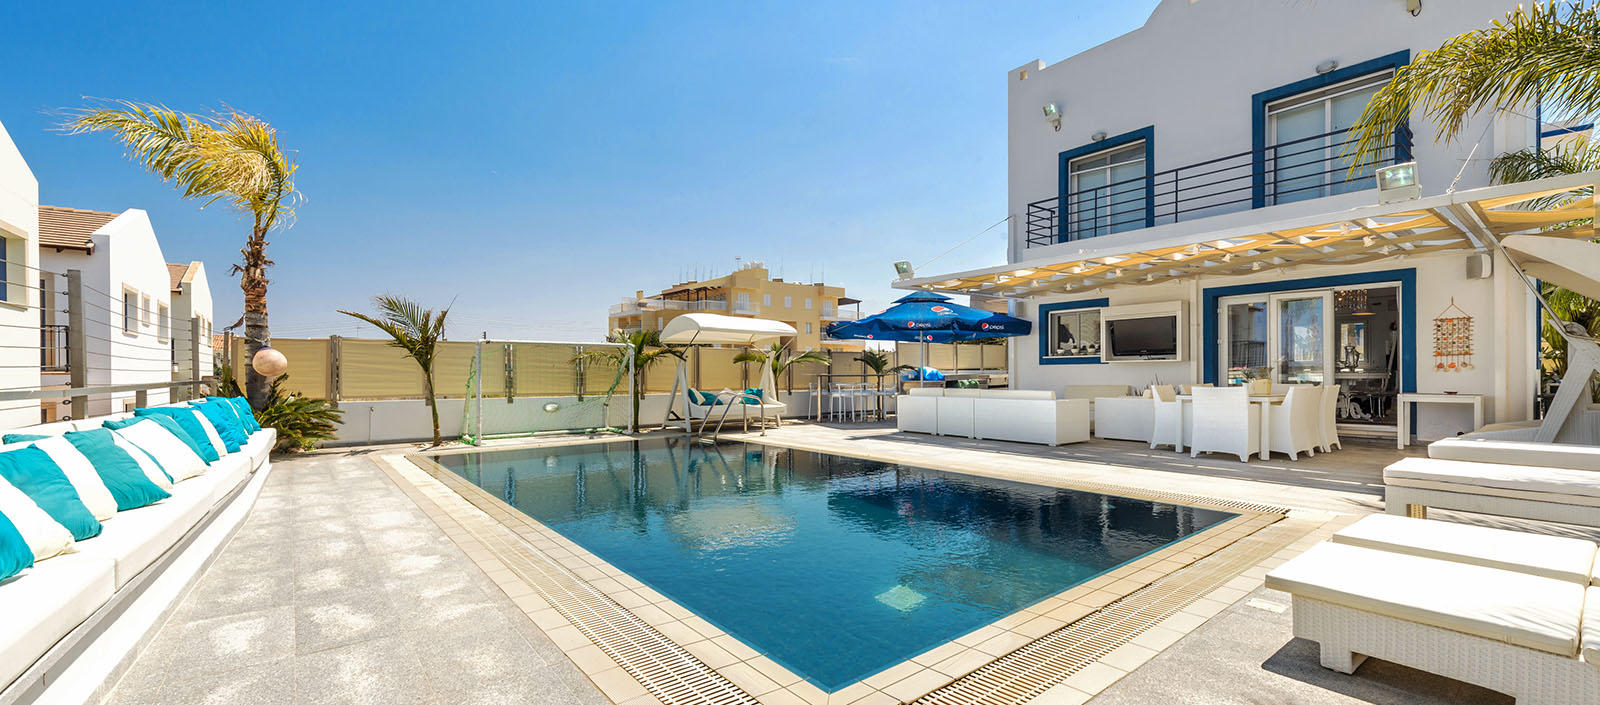 Cyprus Holiday Villa 491425